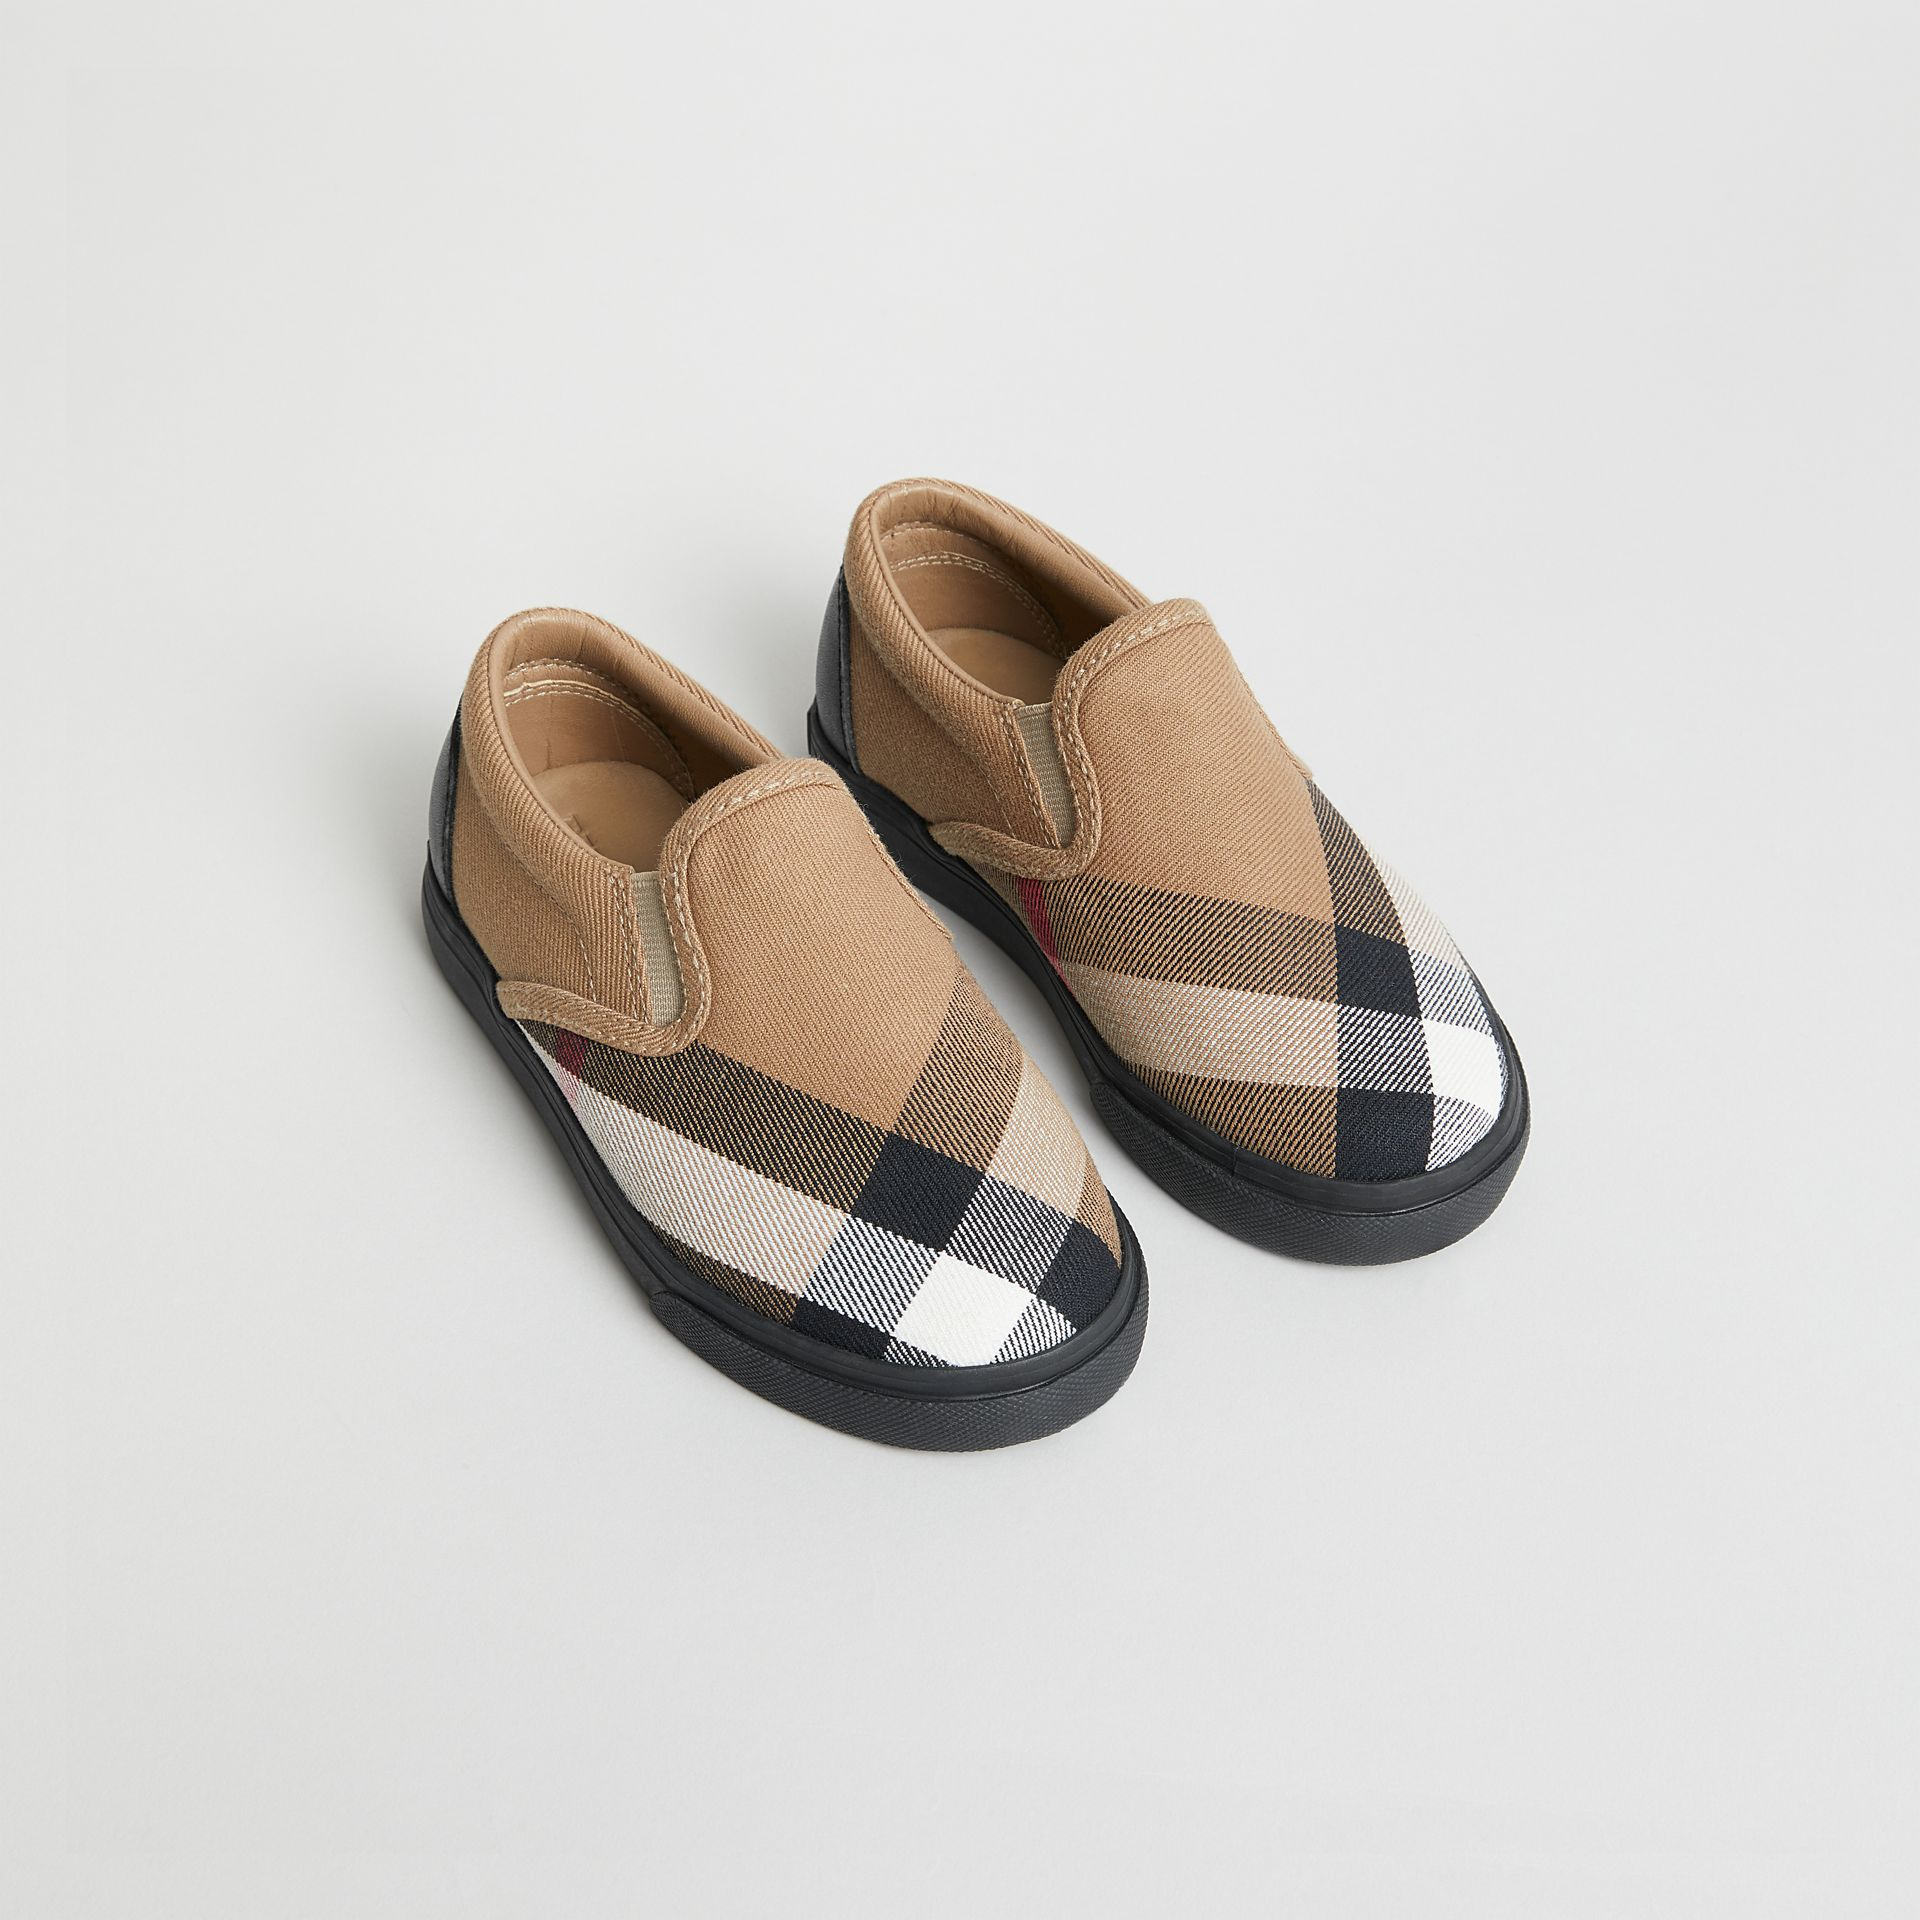 House Check and Leather Slip-on Sneakers in Classic/black | Burberry United Kingdom - gallery image 0